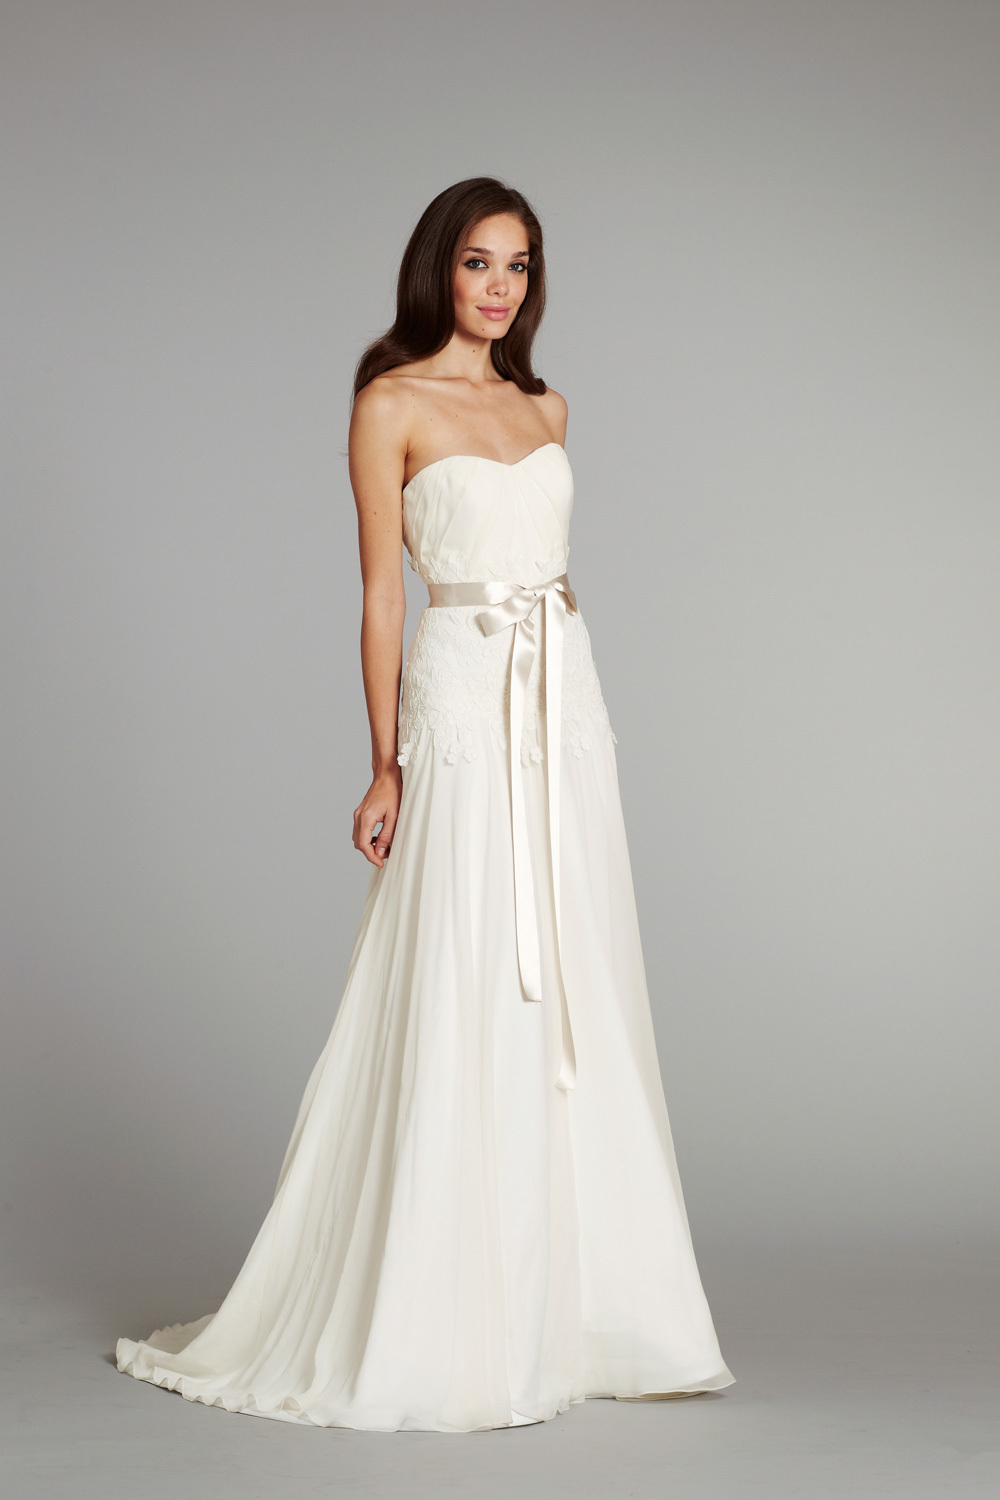 Bridal-gown-wedding-dress-jlm-hayley-paige-fall-2012-tuula-front.full